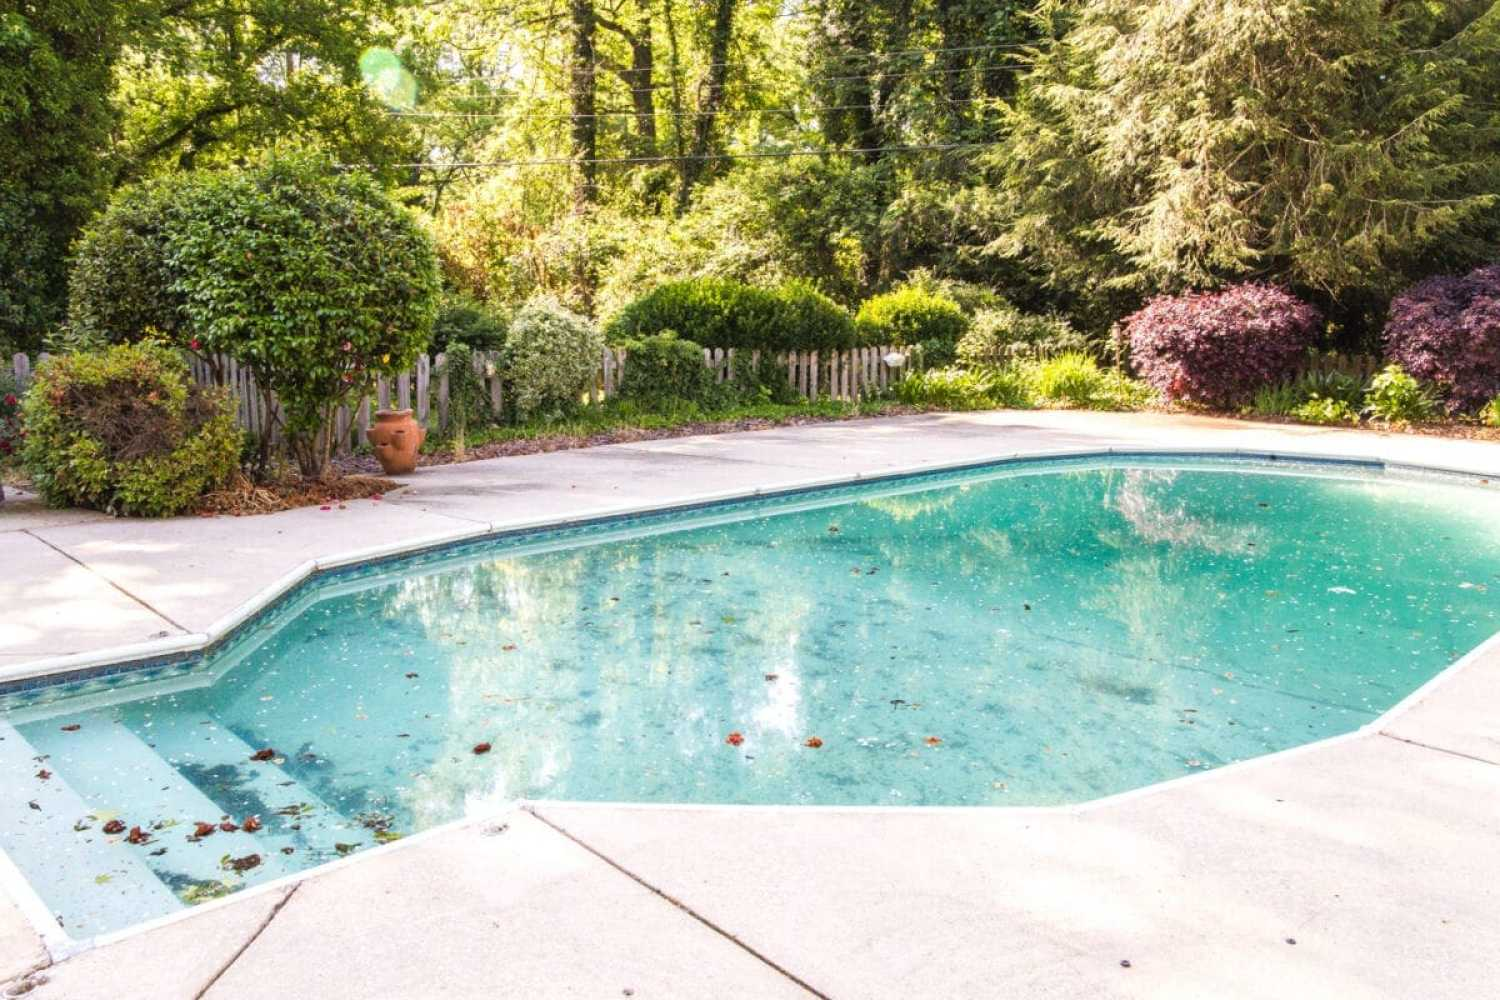 Backyard Before Tour and Pool Makeover Plans | blesserhouse.com - Ideas to improve an overgrown backyard and outdated pool